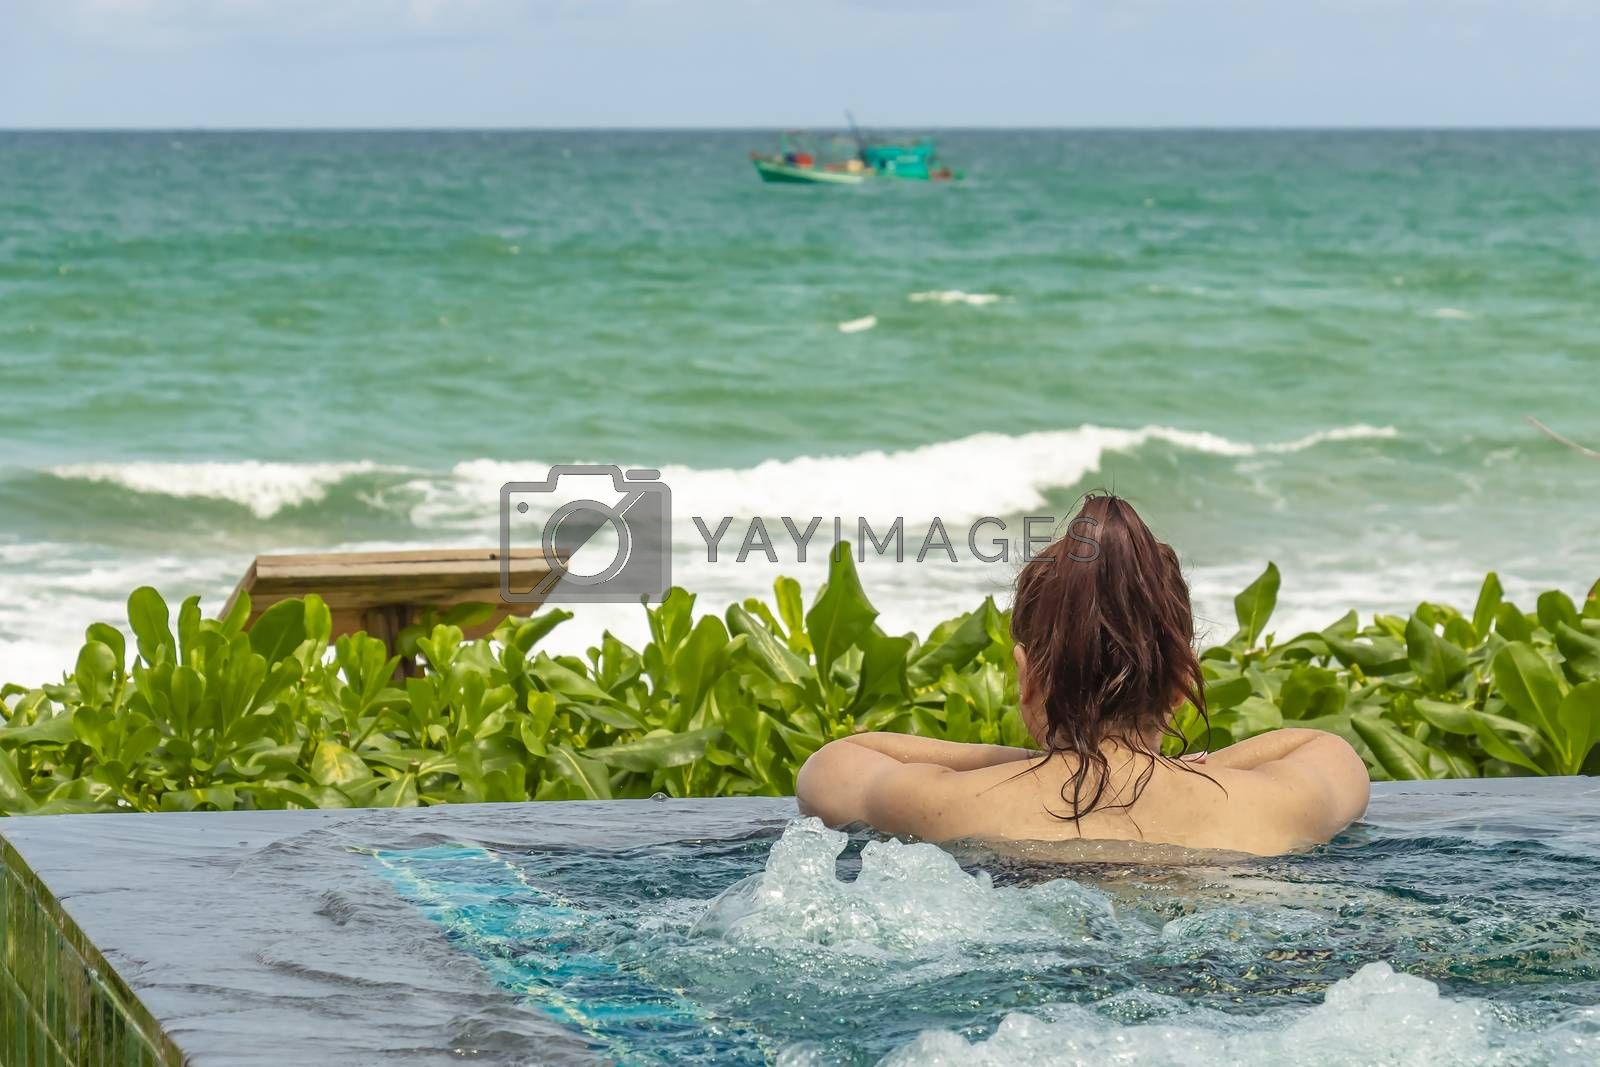 Female in a beach resort swimming pool looking towards the open sea